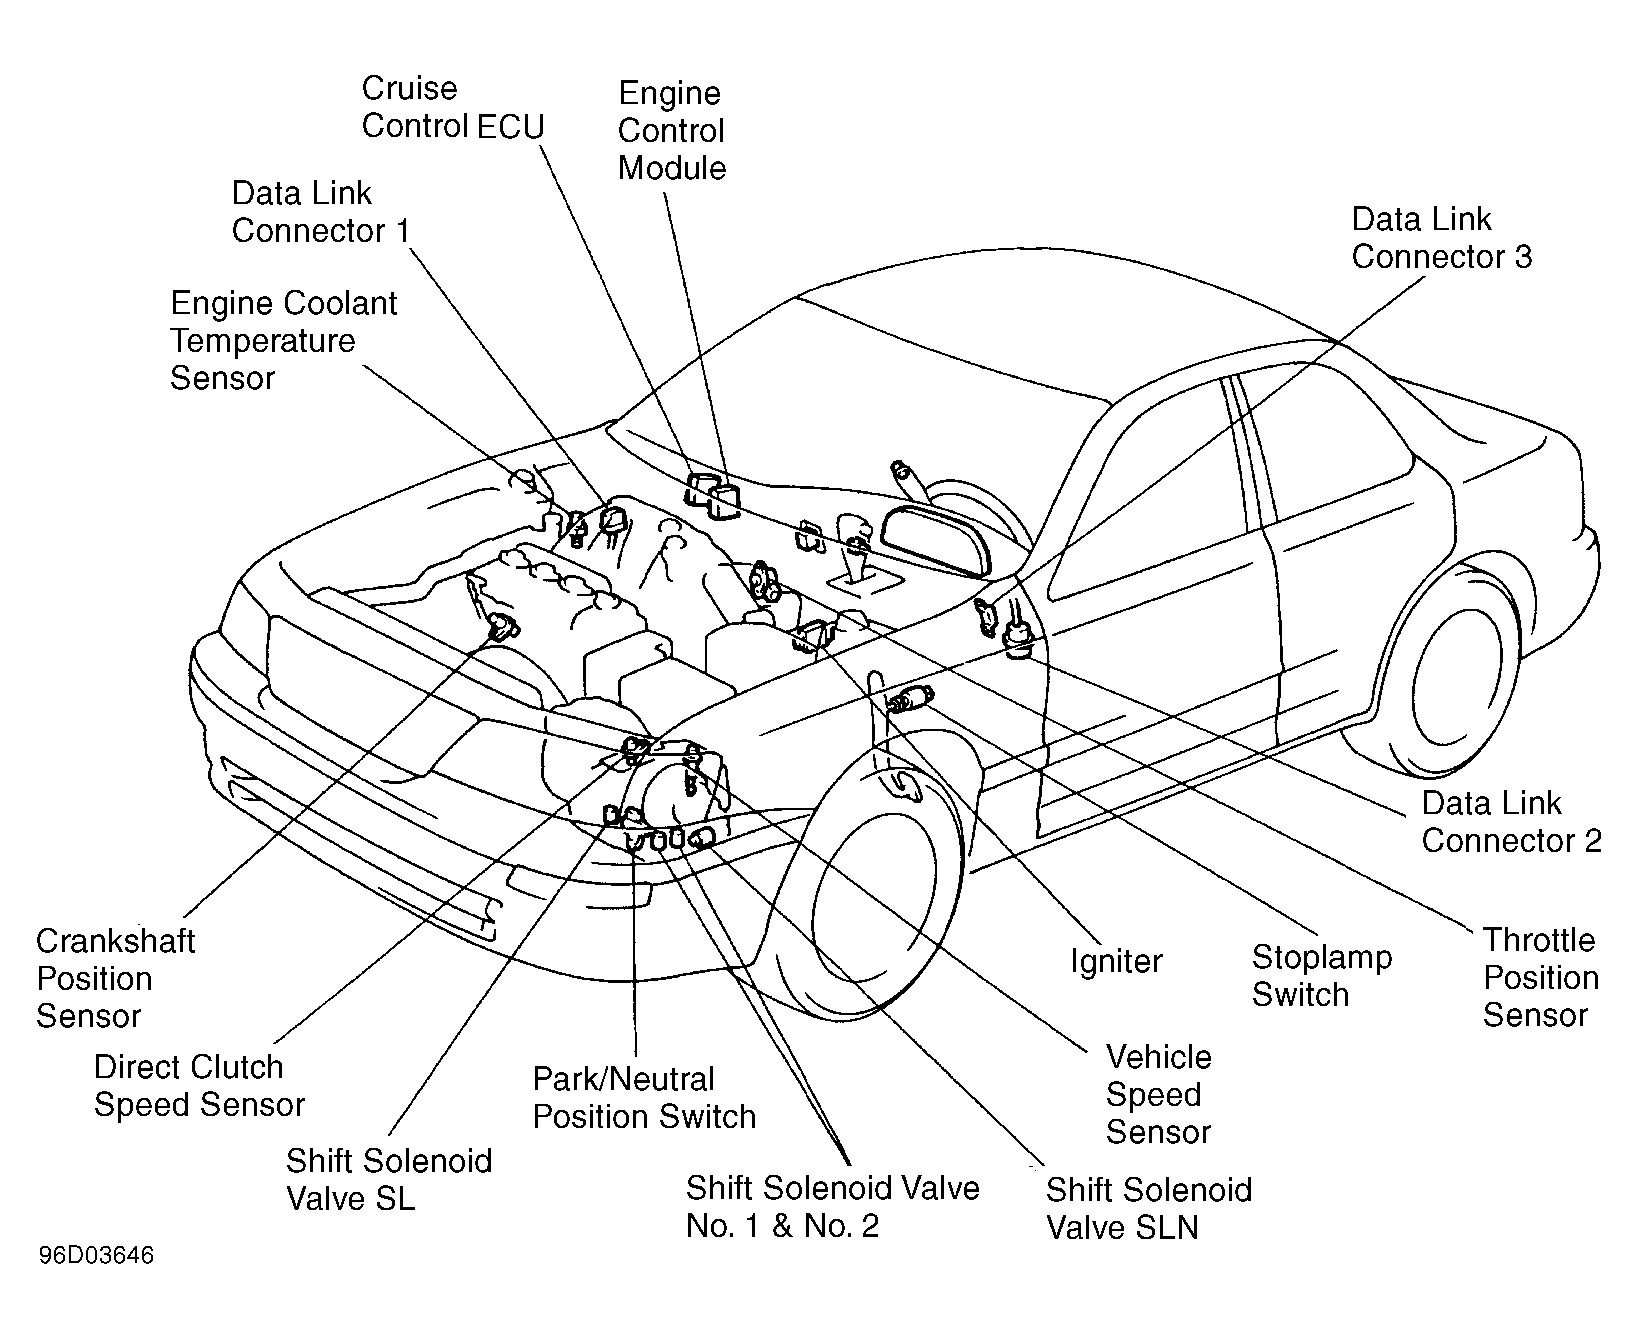 1996 toyota Camry 2 2 Engine Diagram Download 1995 toyota Camry Ignition Coil Replacement Of 1996 toyota Camry 2 2 Engine Diagram